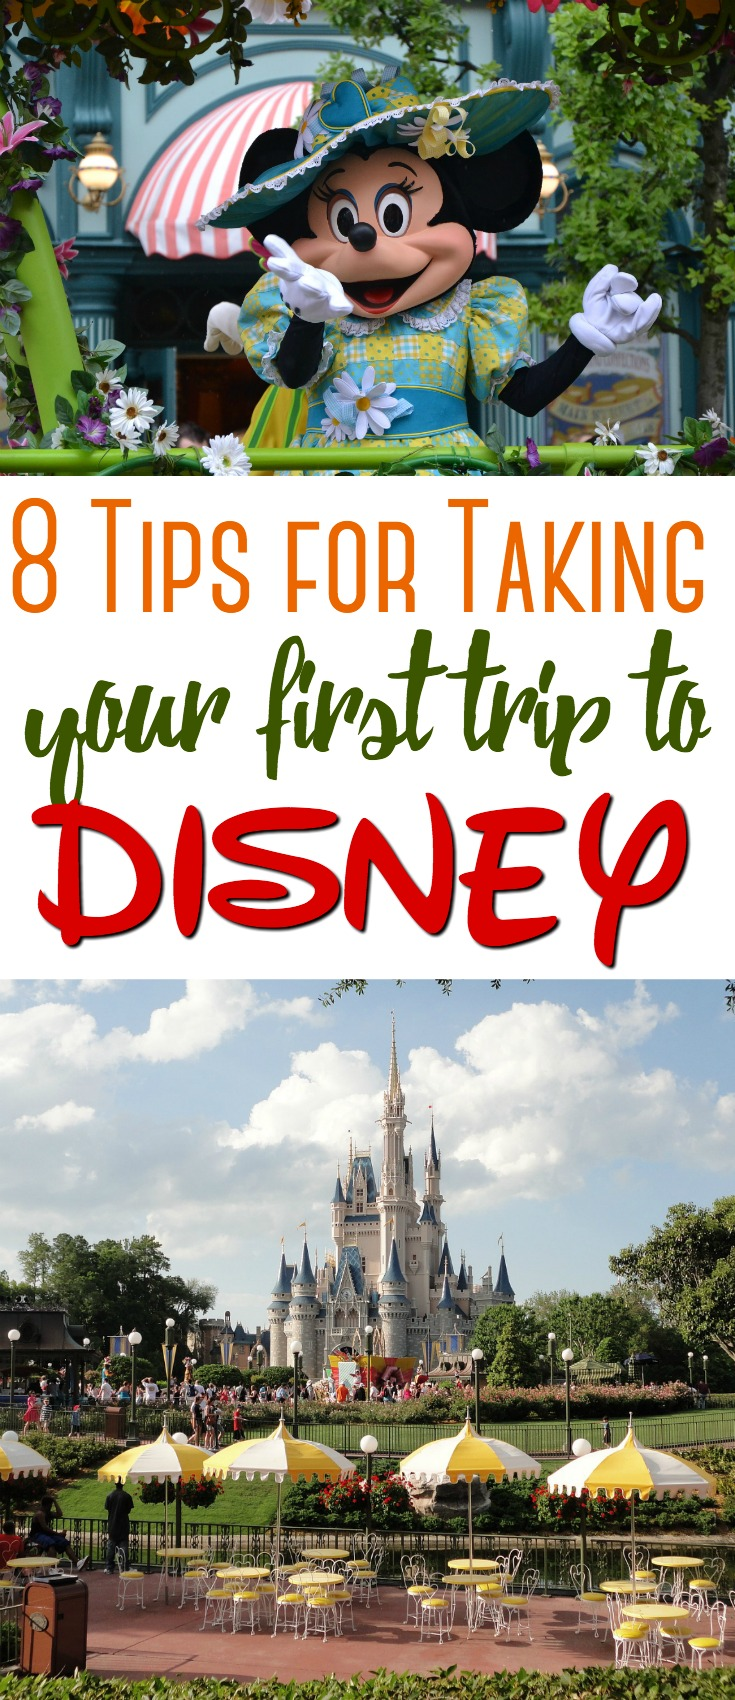 Disney is a wonderful place to visit - no matter what your age! Here are 8 tips for making your first trip to Disney one that you will never forget!